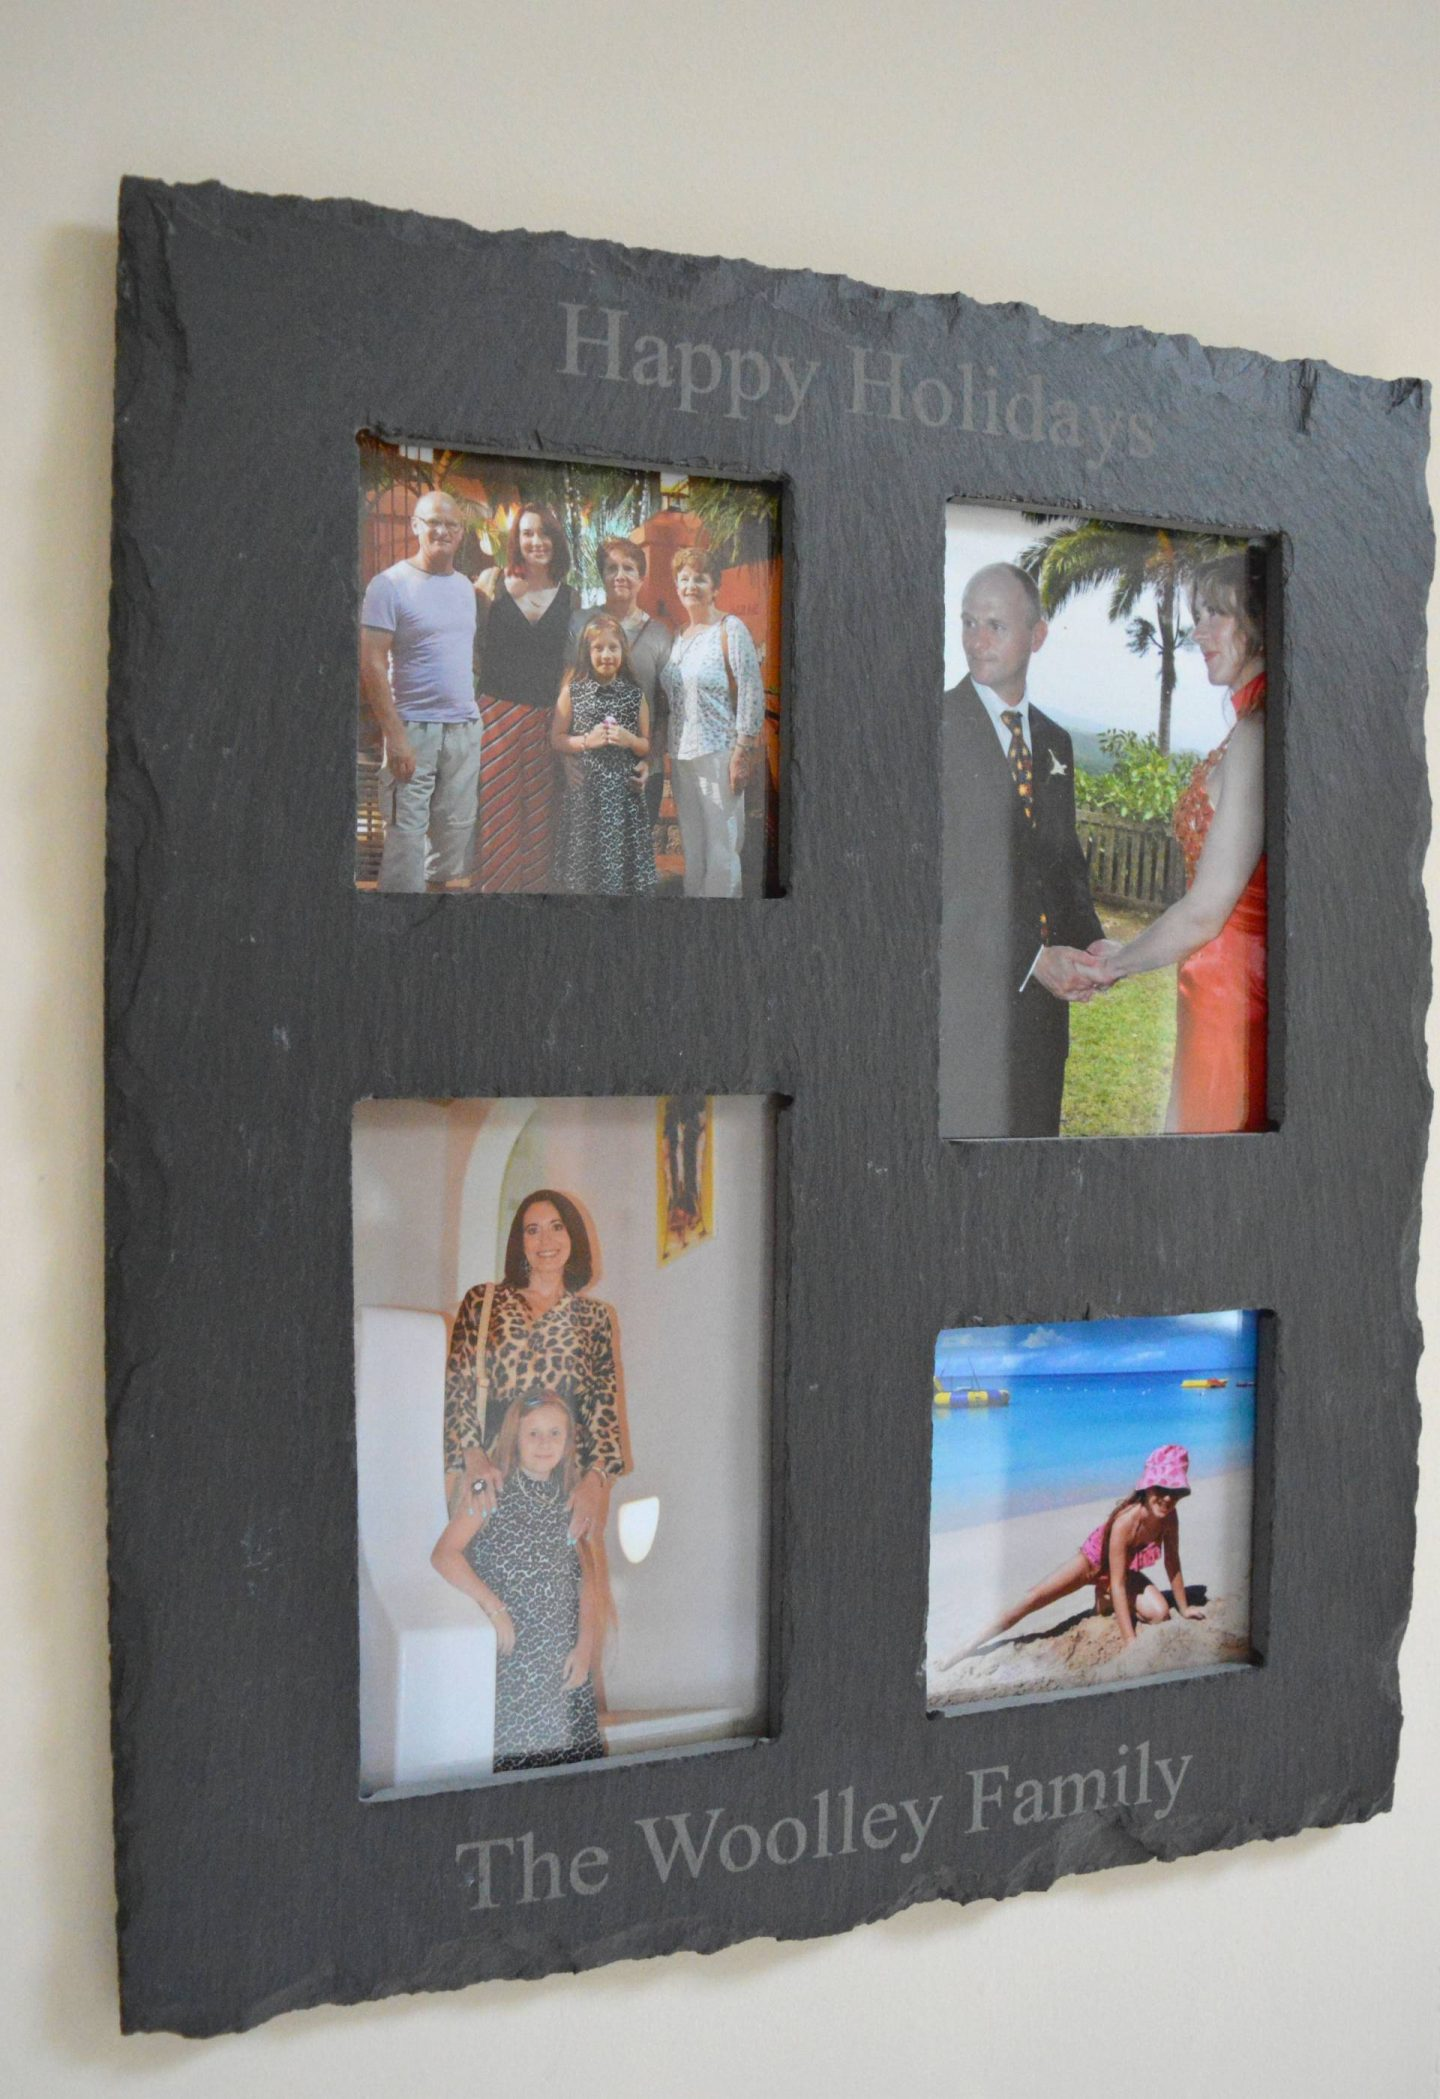 Capturing Wonderful Holiday Memories, The Gift Experience persoanlised slate phot frame